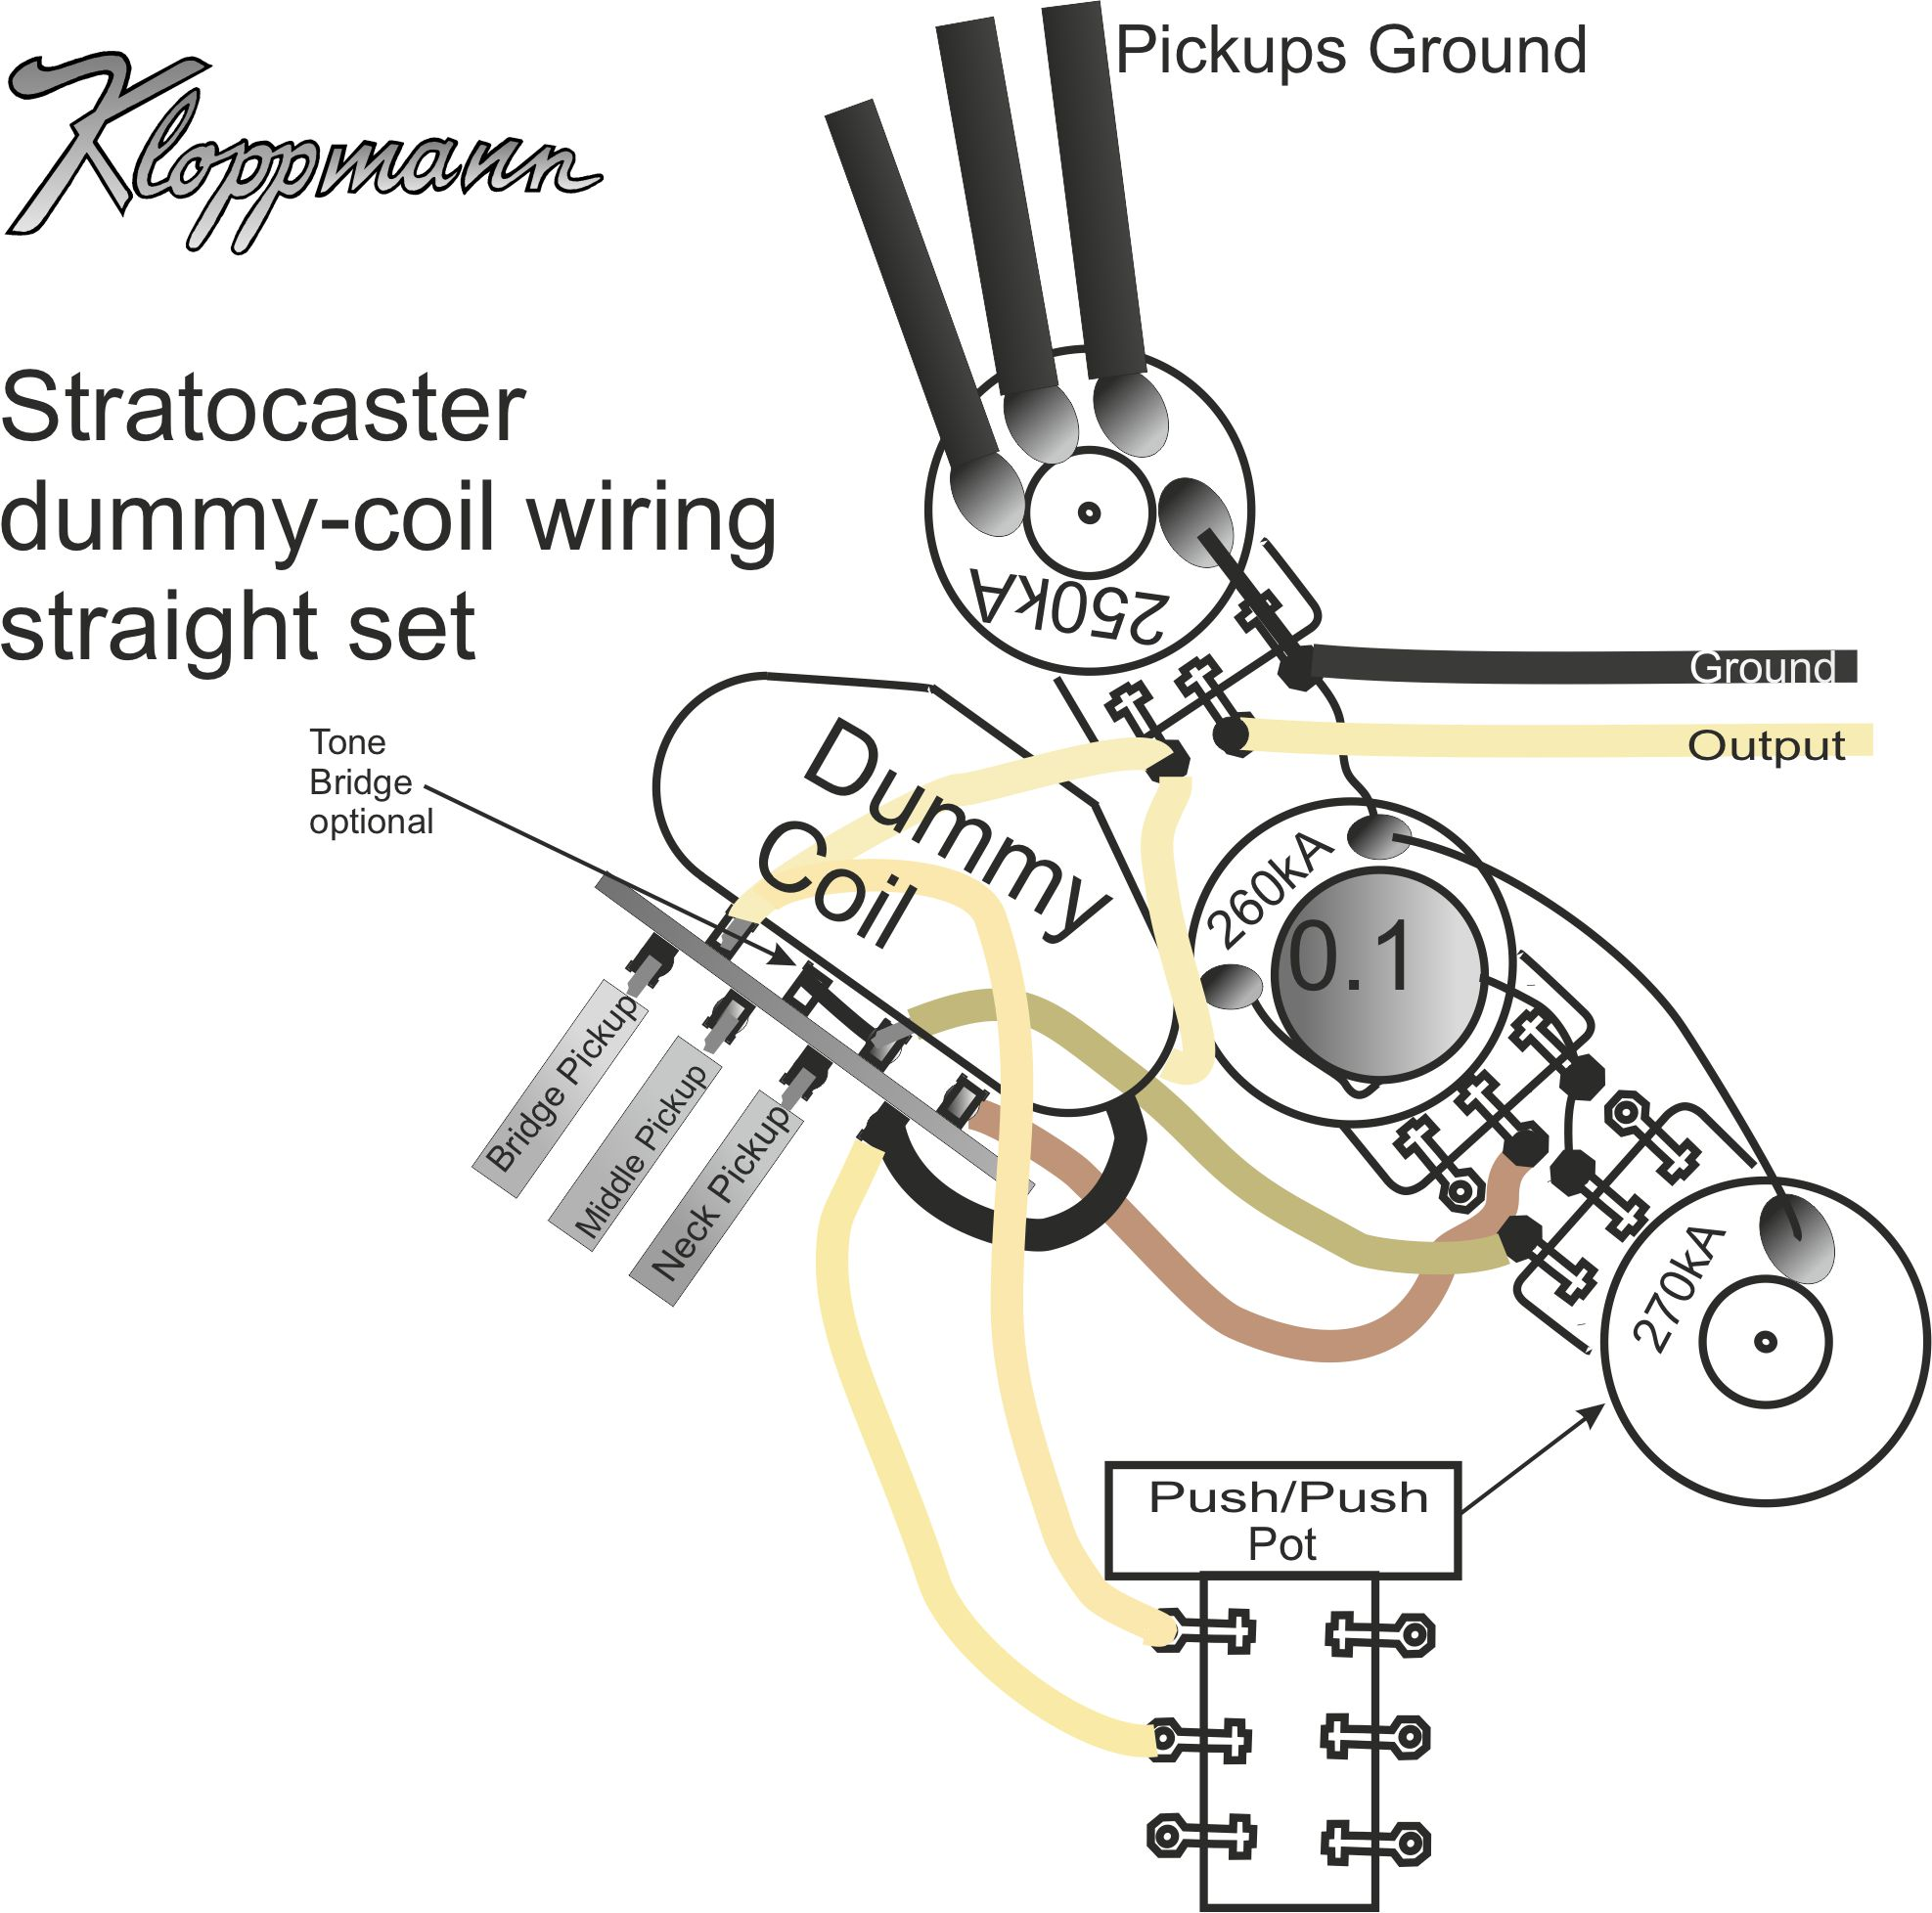 Stratocaster Dummy Coil Wiring Plan hss wiring diagram 7 on hss wiring diagram